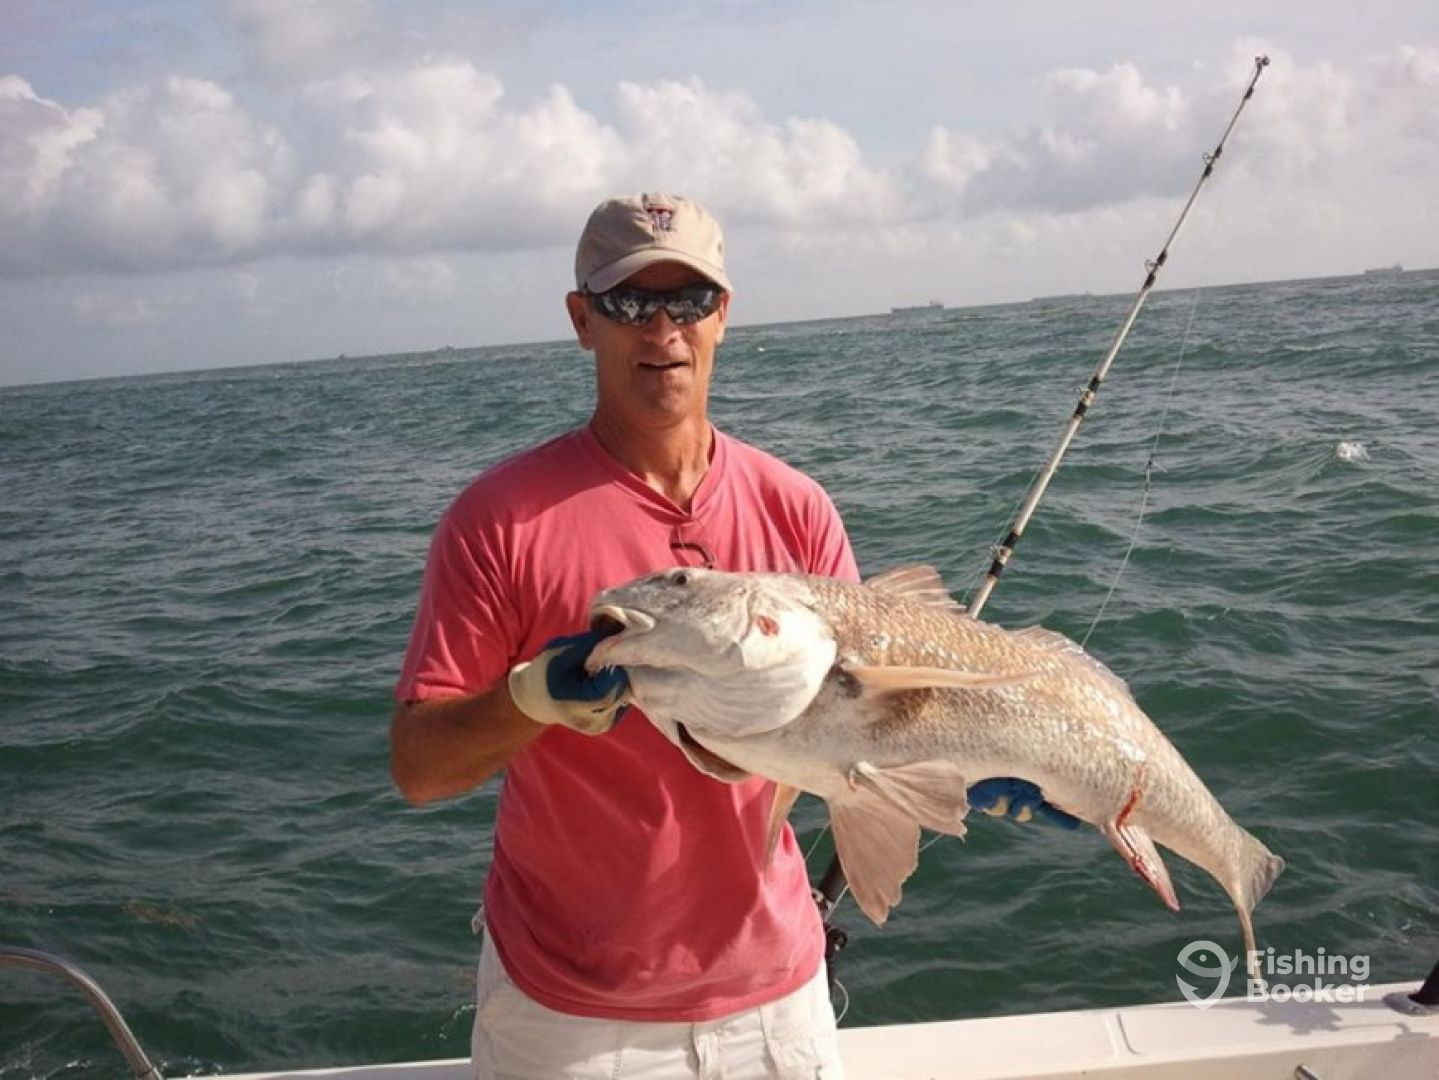 Get u sum charters 27ft sea cat galveston tx for Fishing galveston tx